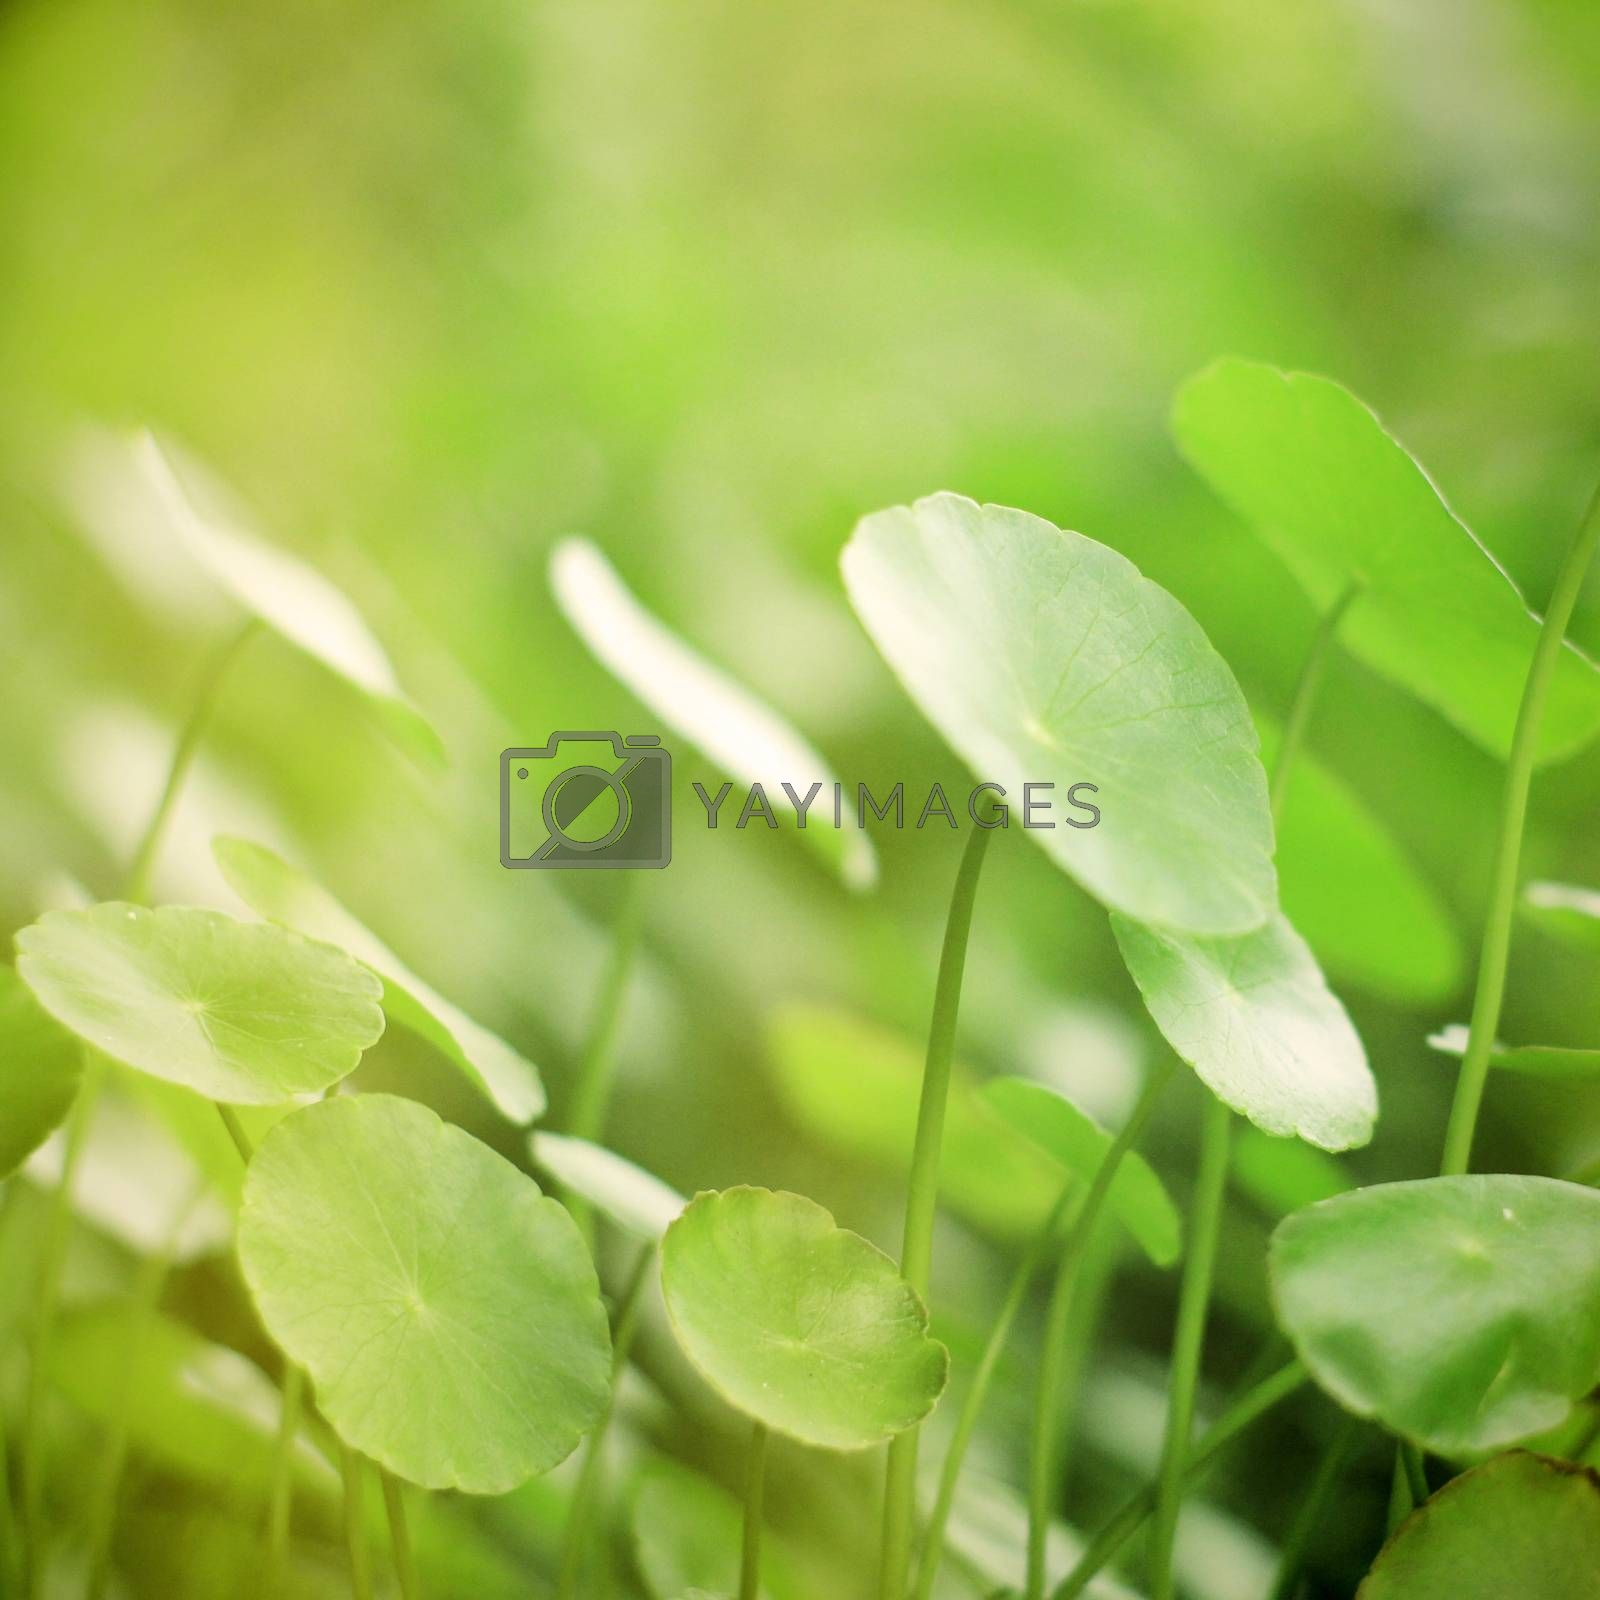 Green plant with retro filter effect